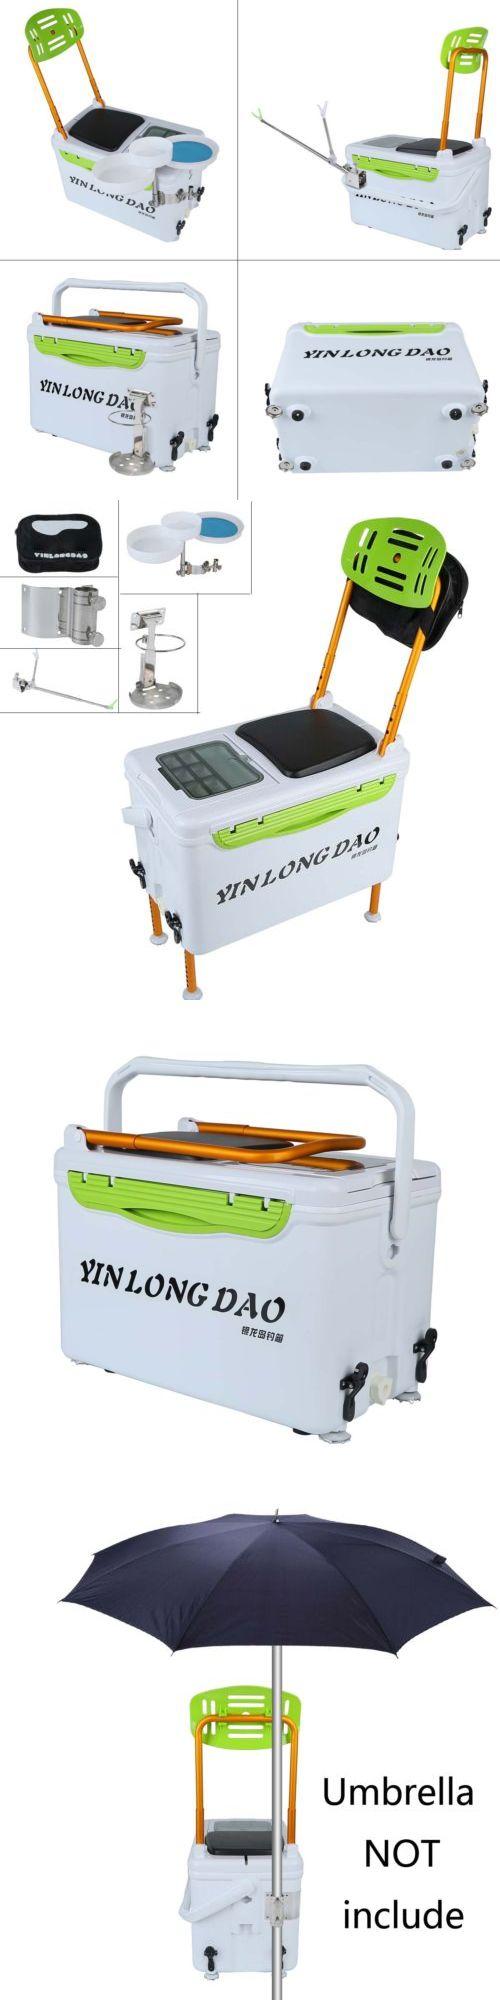 Chairs and Seats 19985: Hot New Fishing Tackle Box Lightweight Insulated Storage Case Useful Angler Seat -> BUY IT NOW ONLY: $100.41 on eBay!